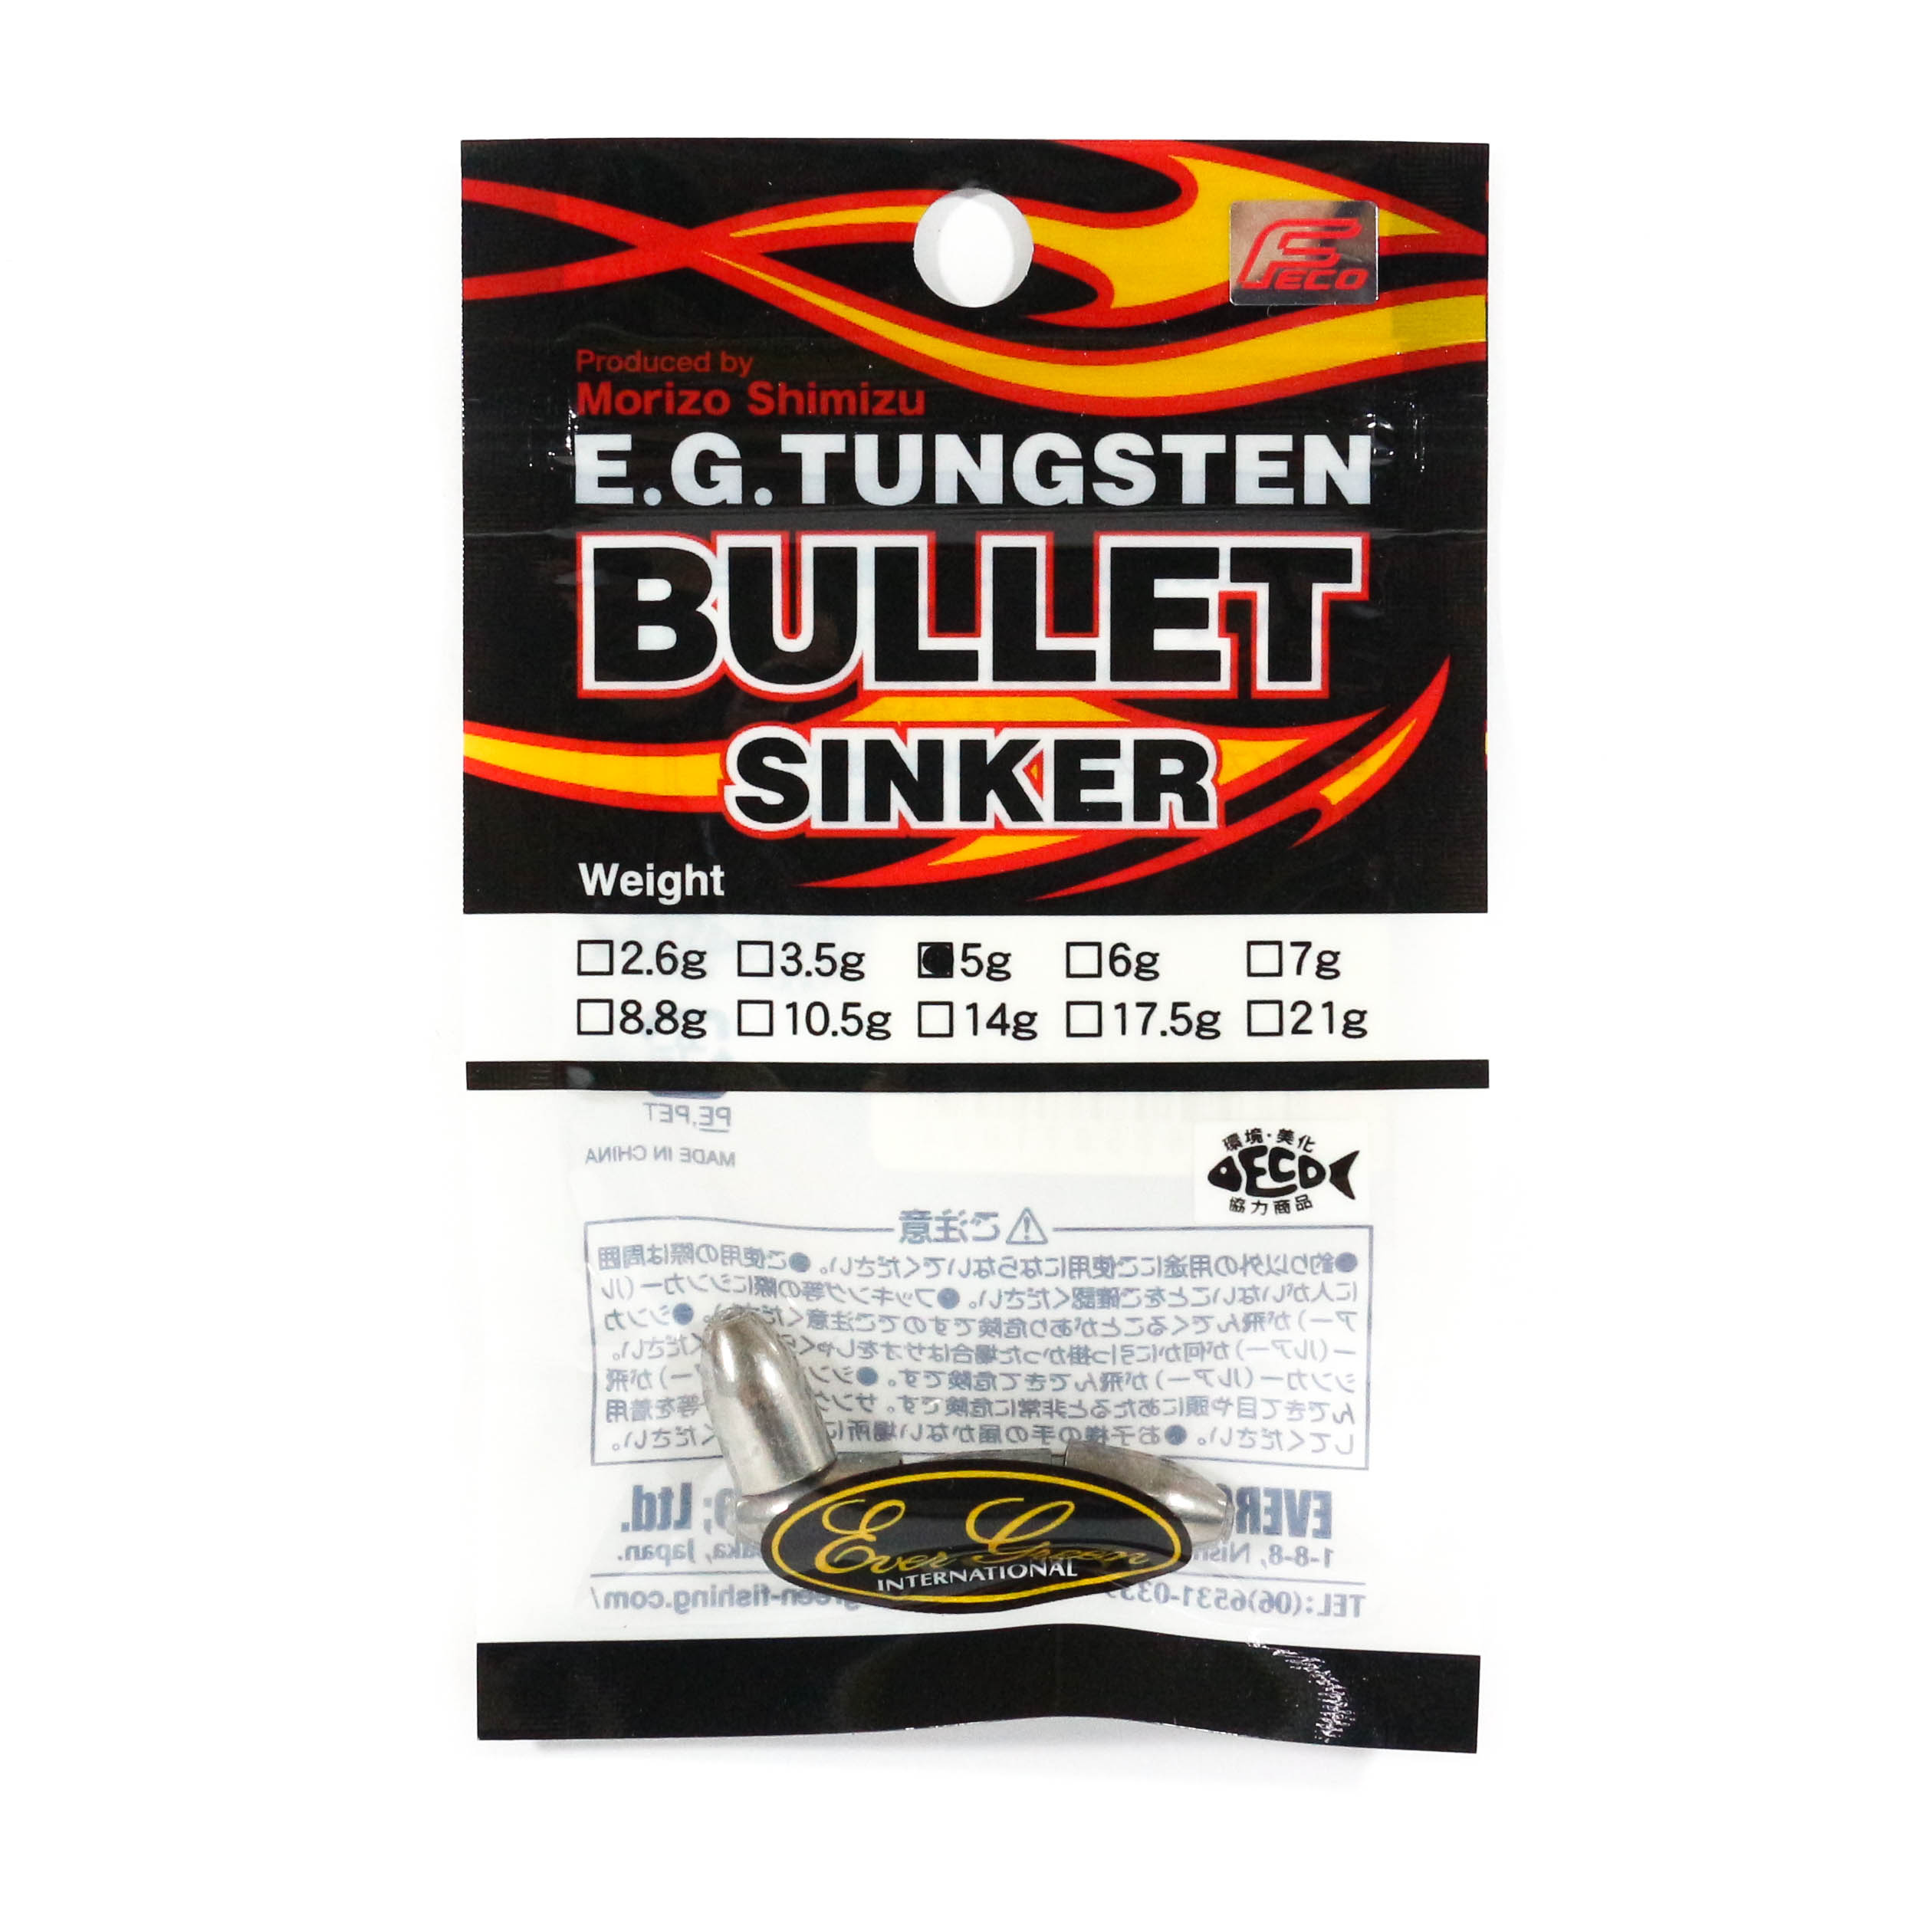 Evergreen Tungsten Bullet Sinker 3/16 oz (5 Grams) (1804)